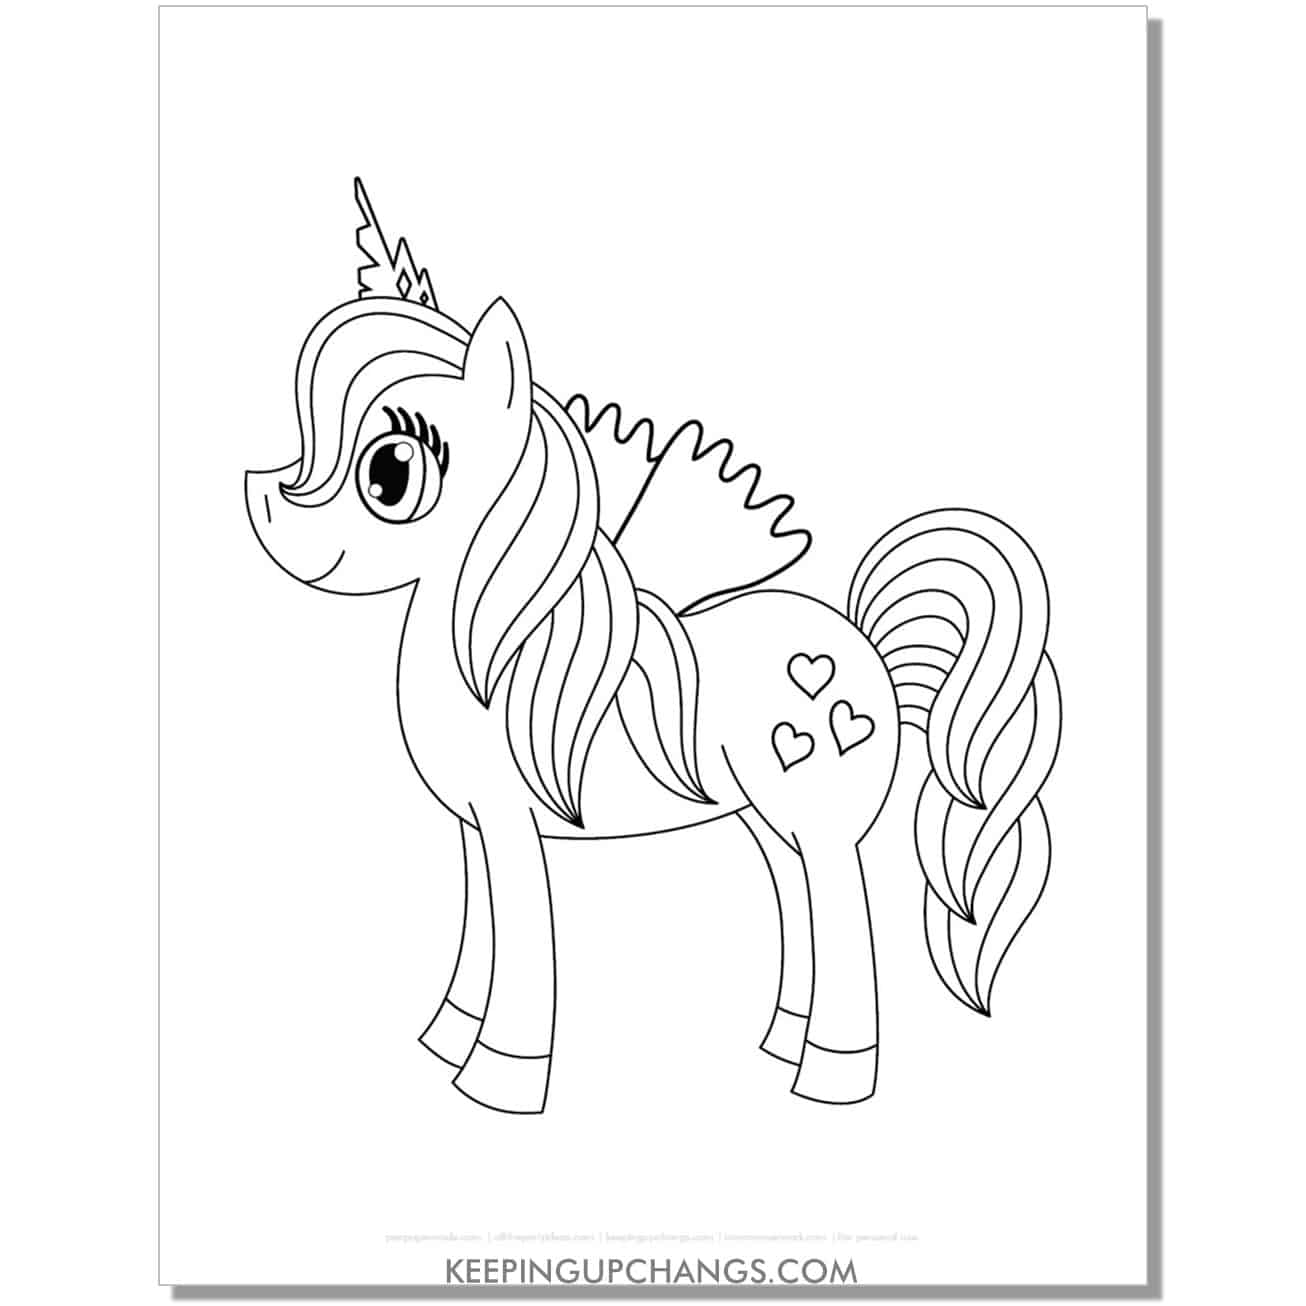 free heart cutie mark my little pony coloring page.